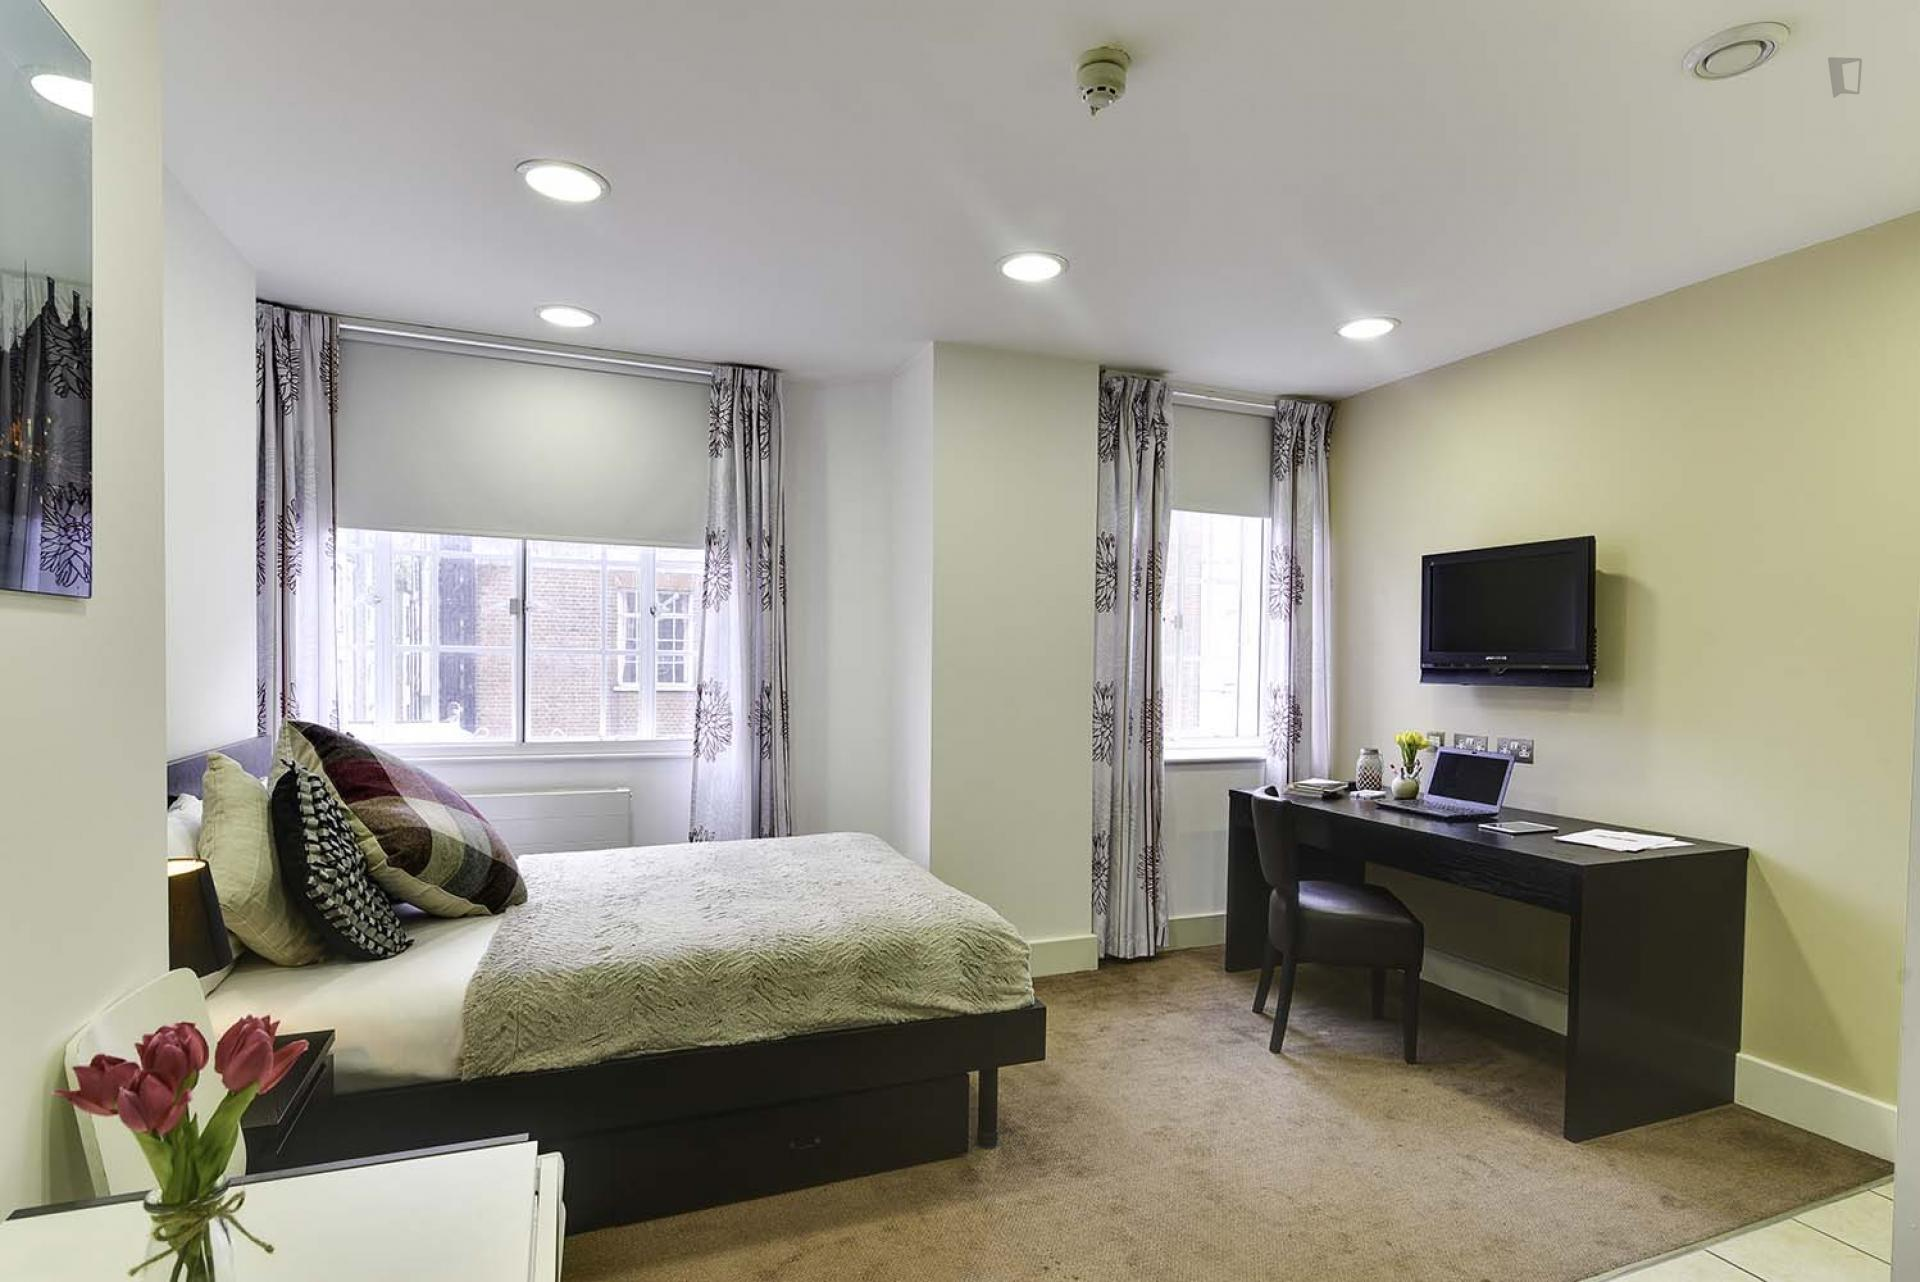 Devonshire - Luxury bedroom in London for expats